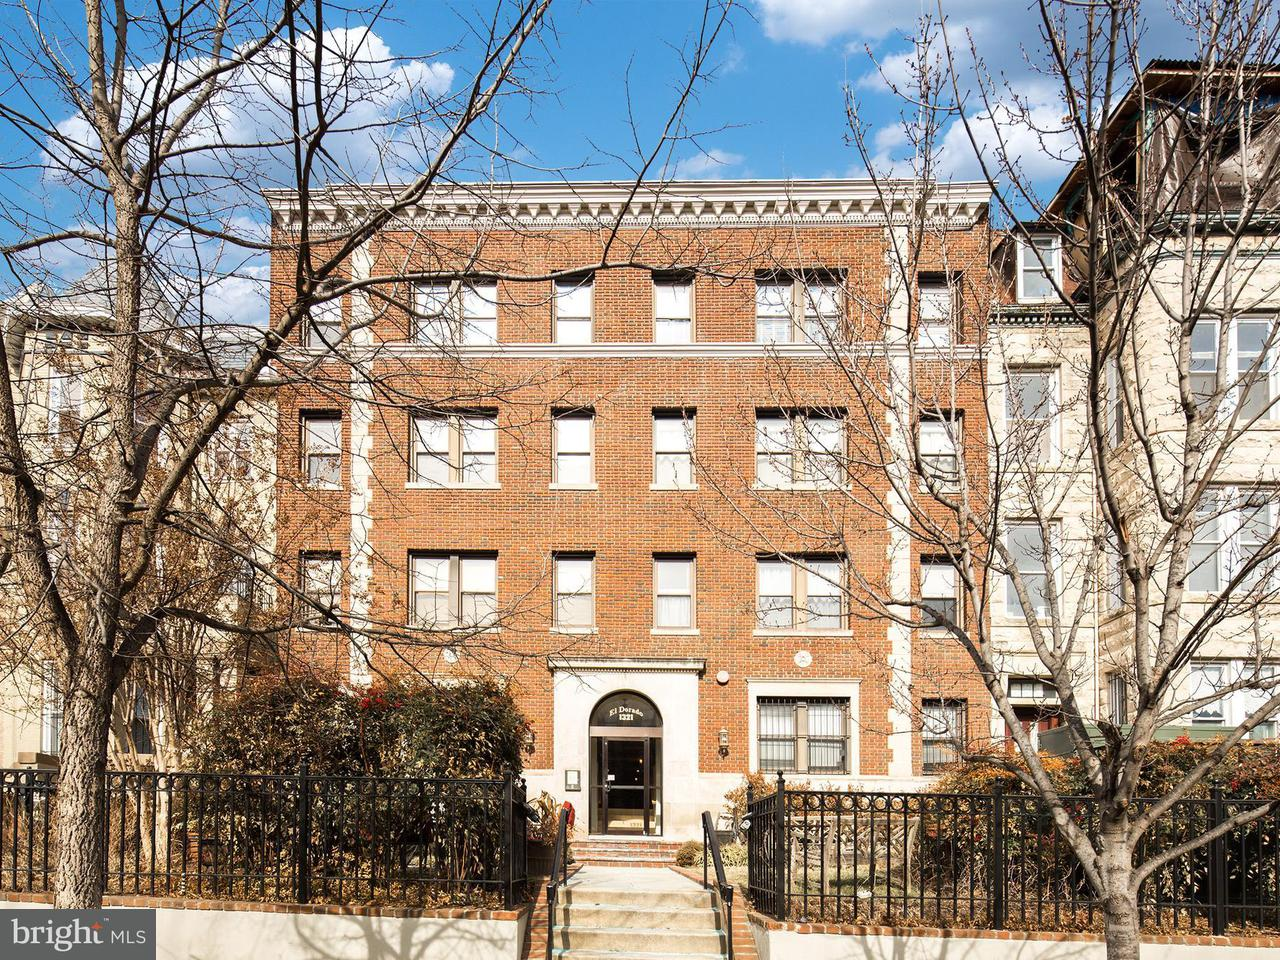 Condominium for Sale at 1321 Fairmont St NW #1 Washington, District Of Columbia 20009 United States